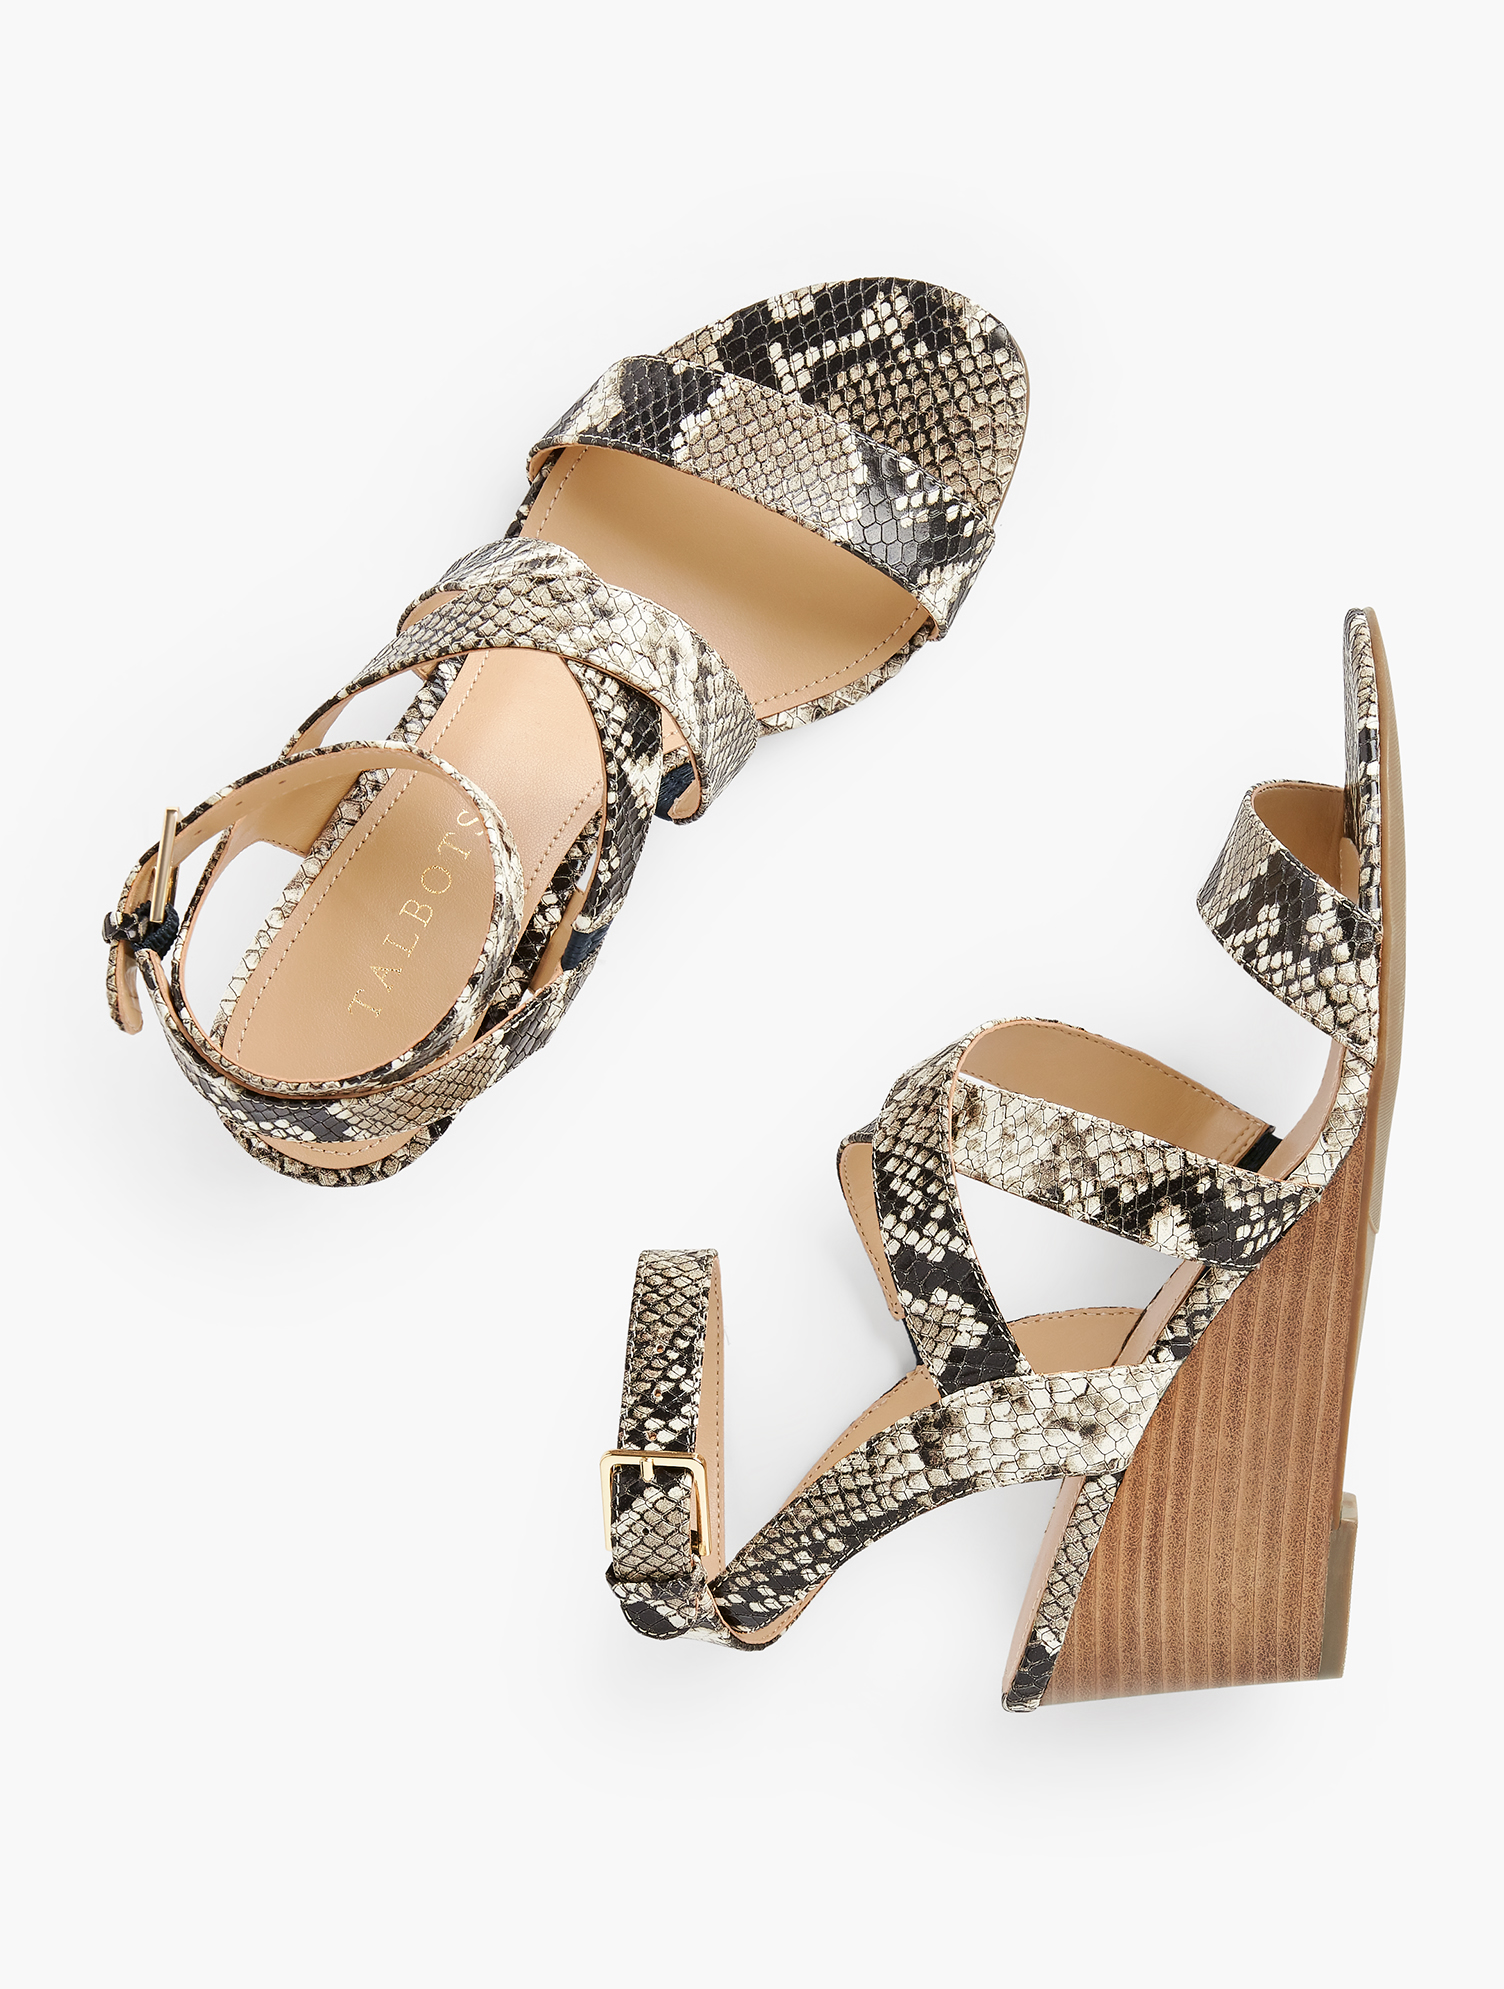 Strappy wedges in on-trend embossed leather. These sandals will elevate any outfit. Features Almond ToeNatural Stack Heel - Rubber Sole3MM Memory FoamImported Material: 100% Leather Royce Strappy Wedges - Embossed - Ivory/Black - 11M Talbots